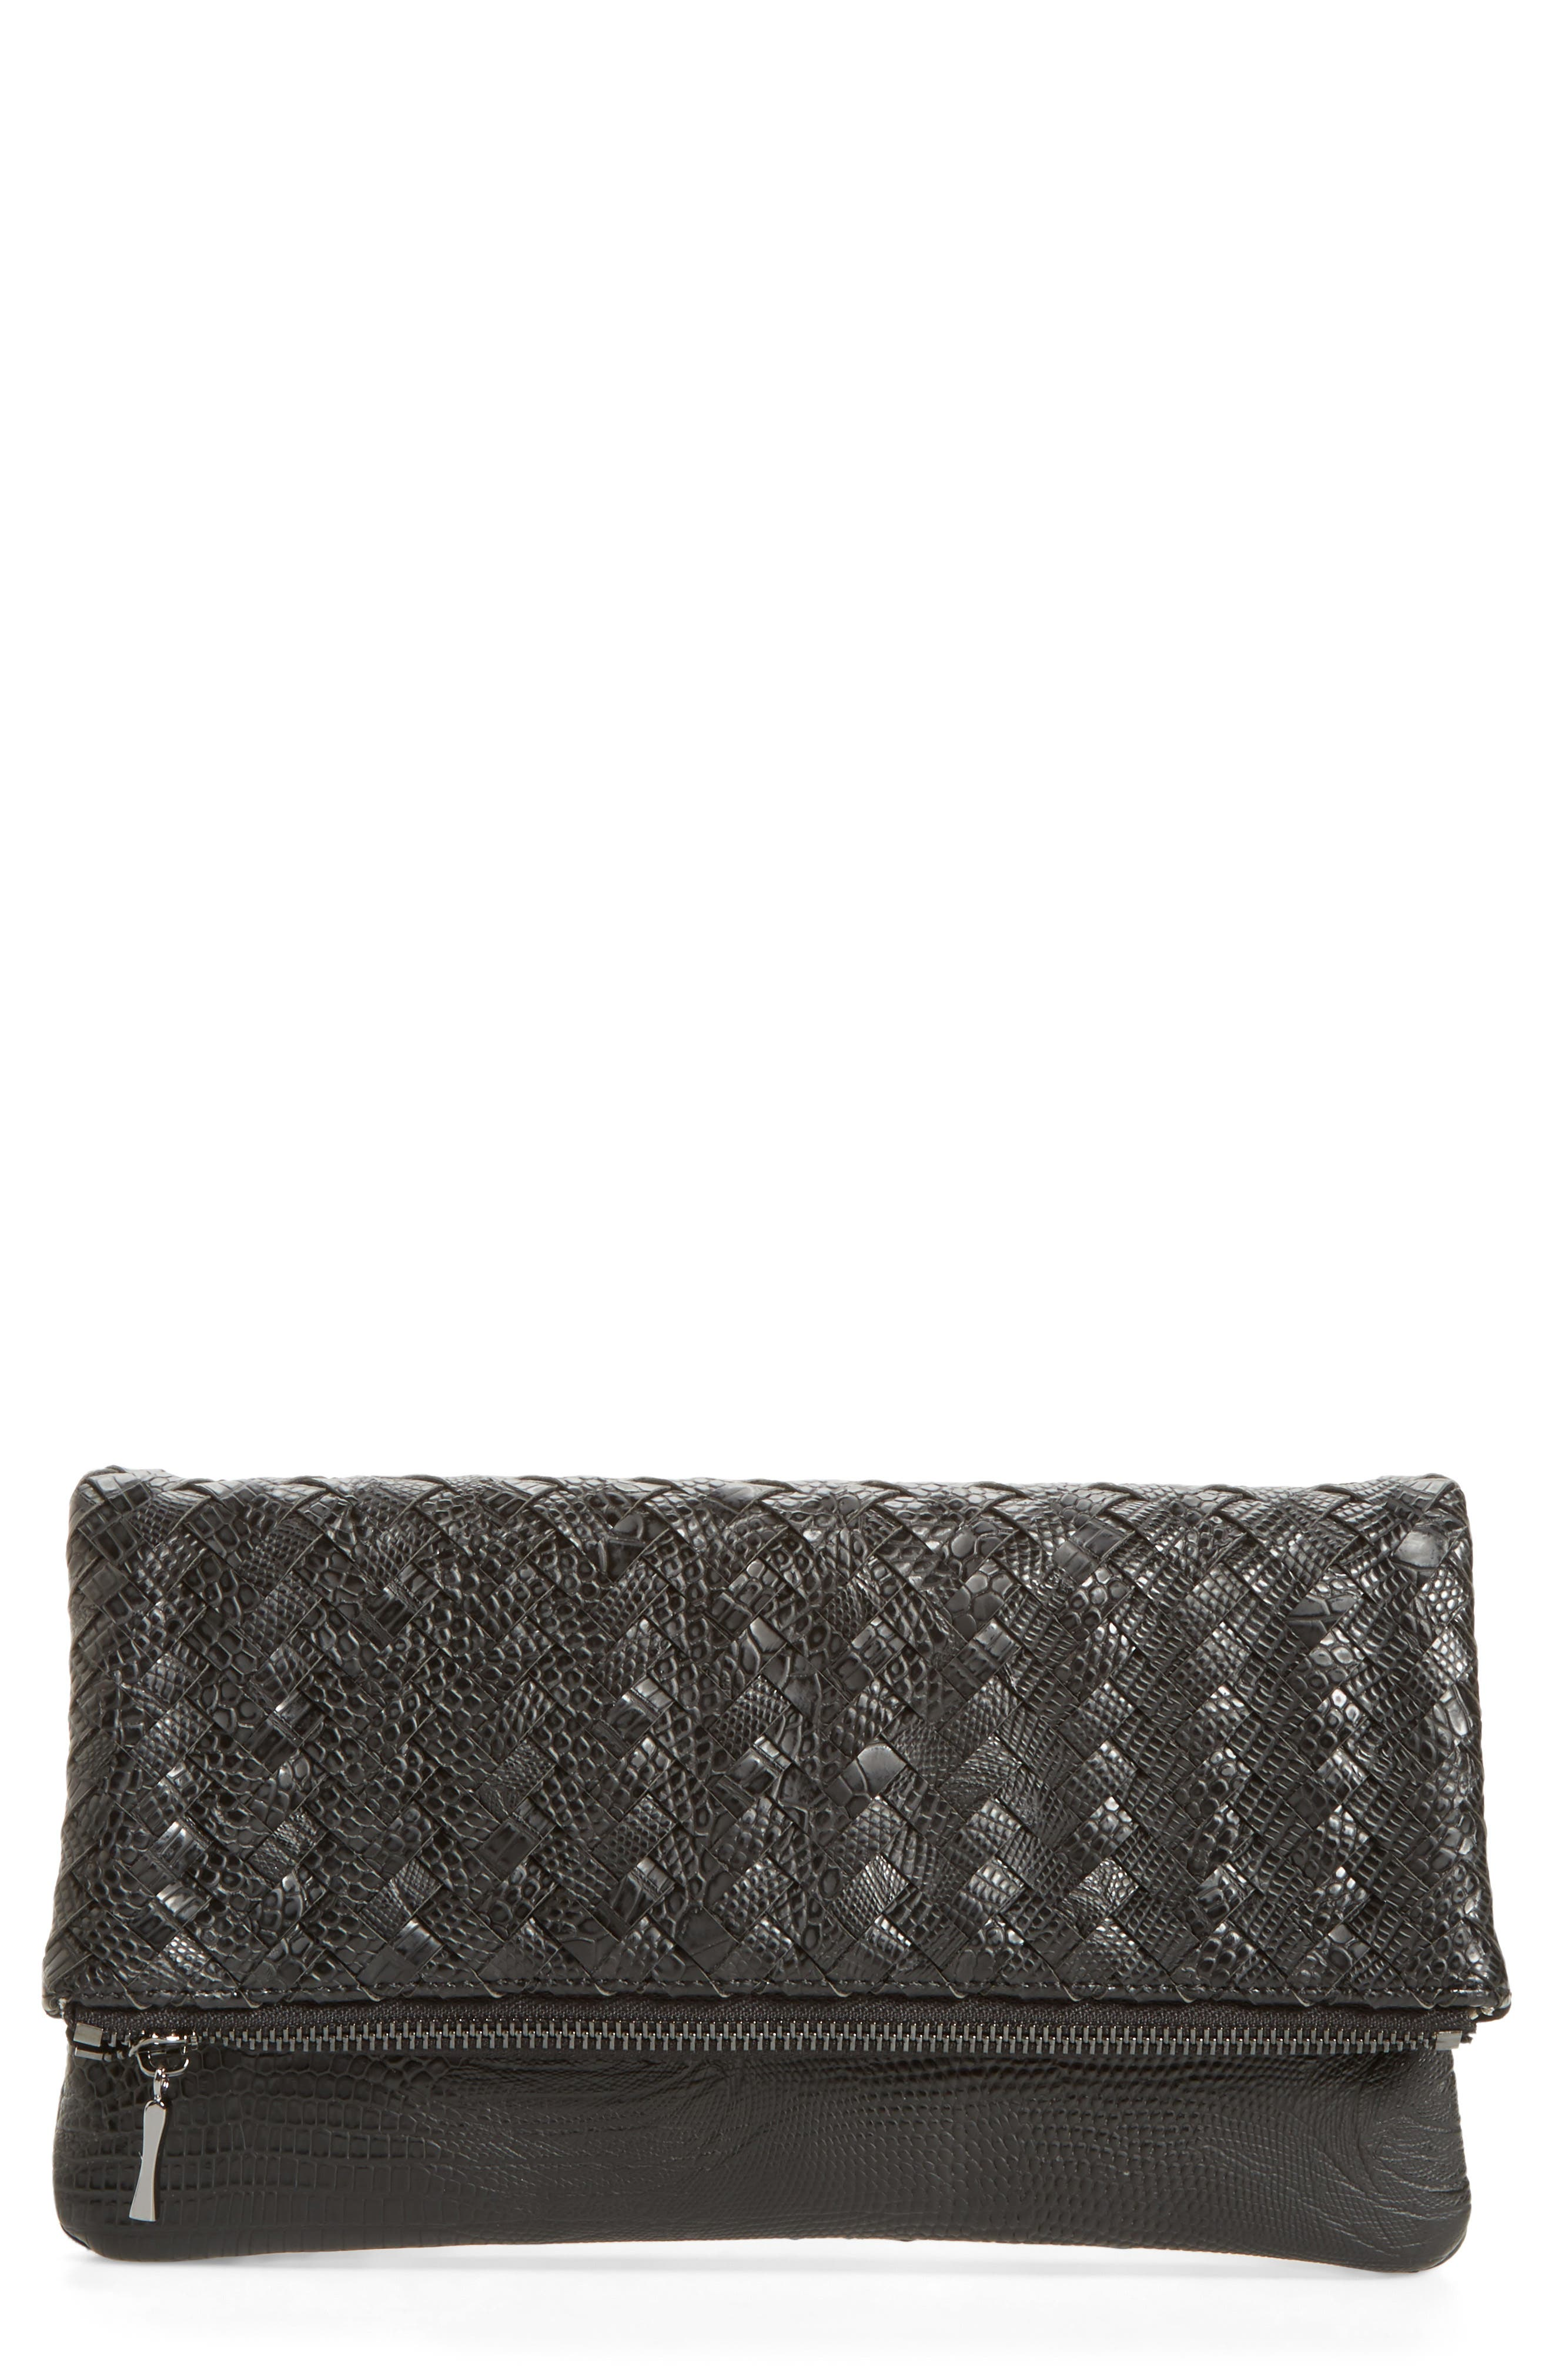 Main Image - Sole Society Kaya Crossweave Clutch